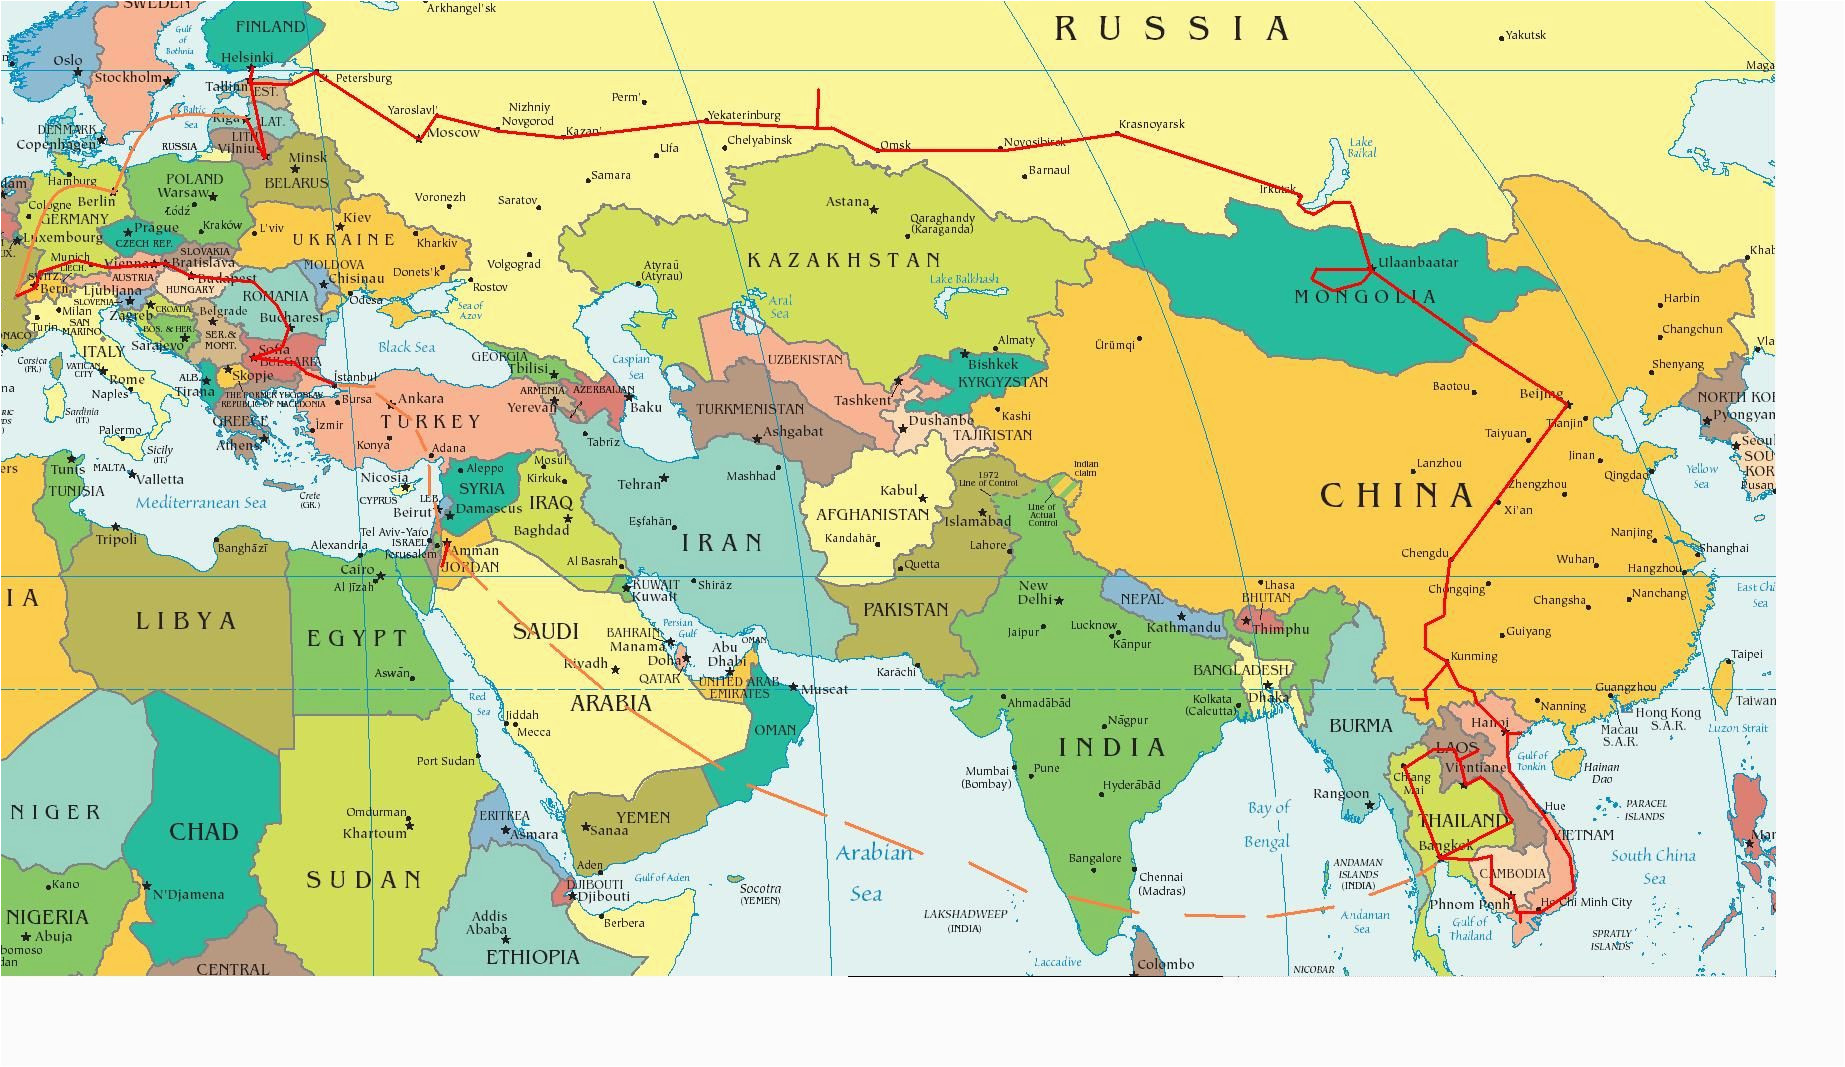 Map Of Mideast and Europe Eastern Europe and Middle East Partial Europe Middle East